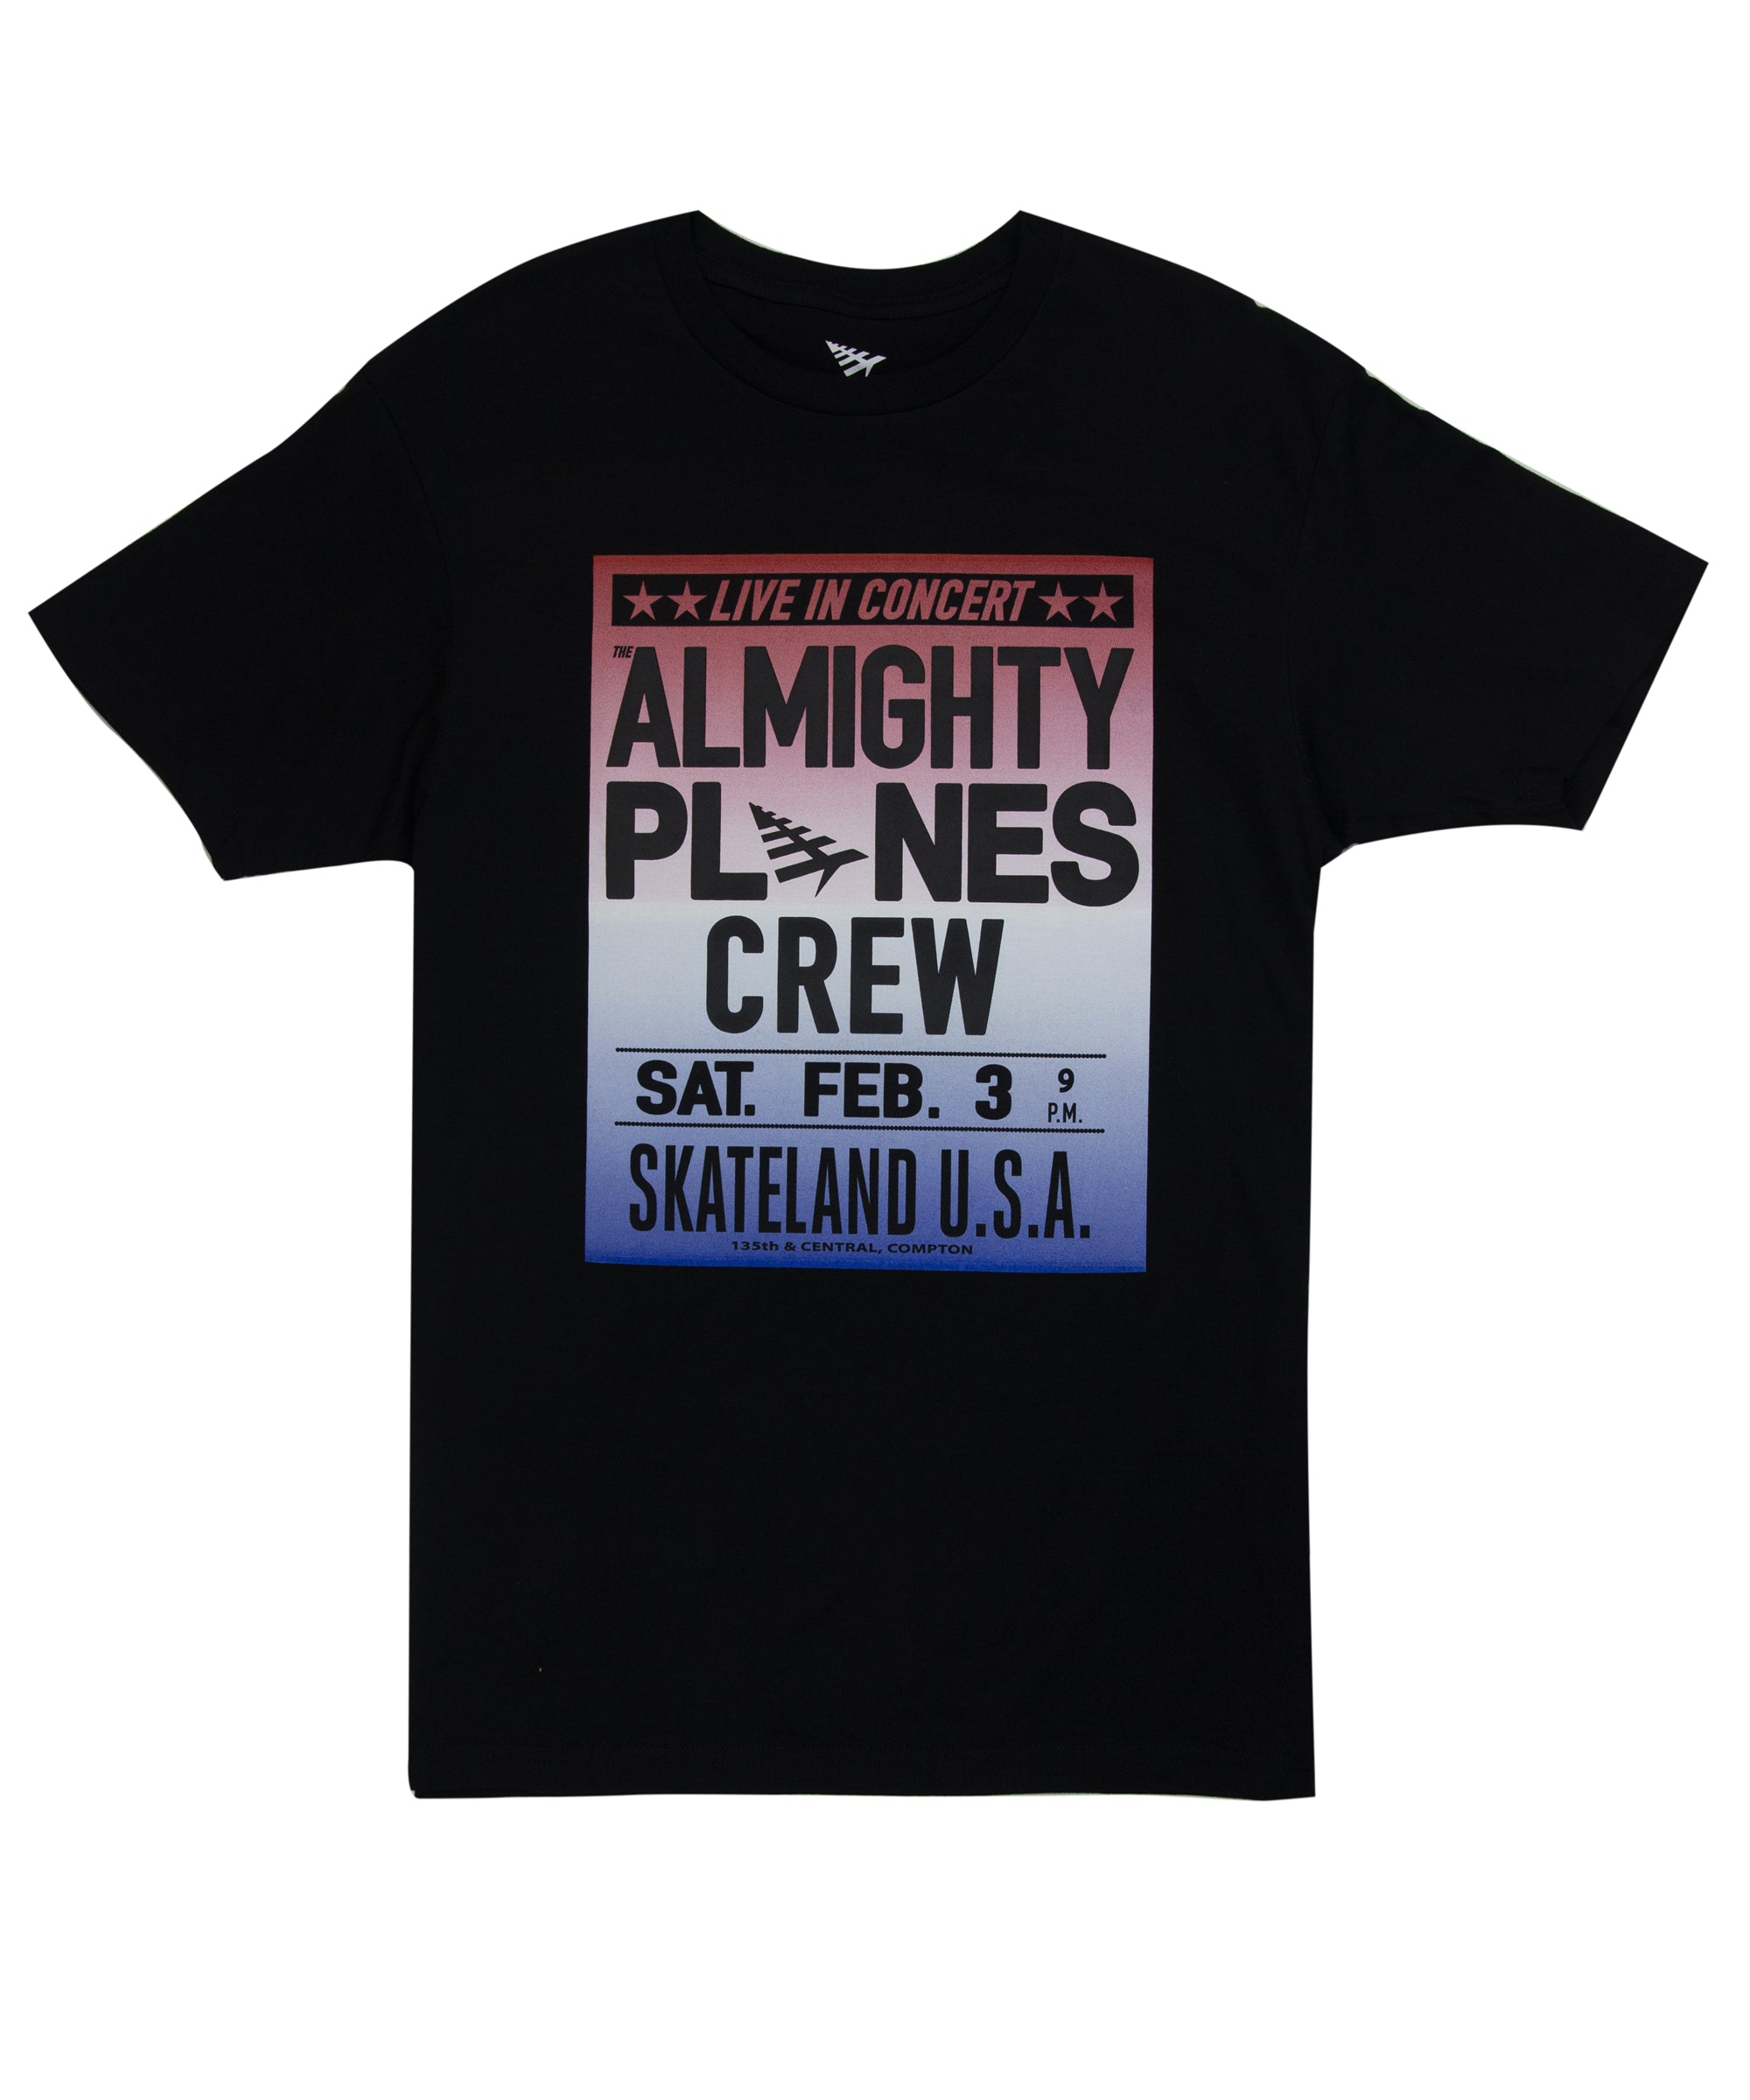 Almighty Planes Crew Tee